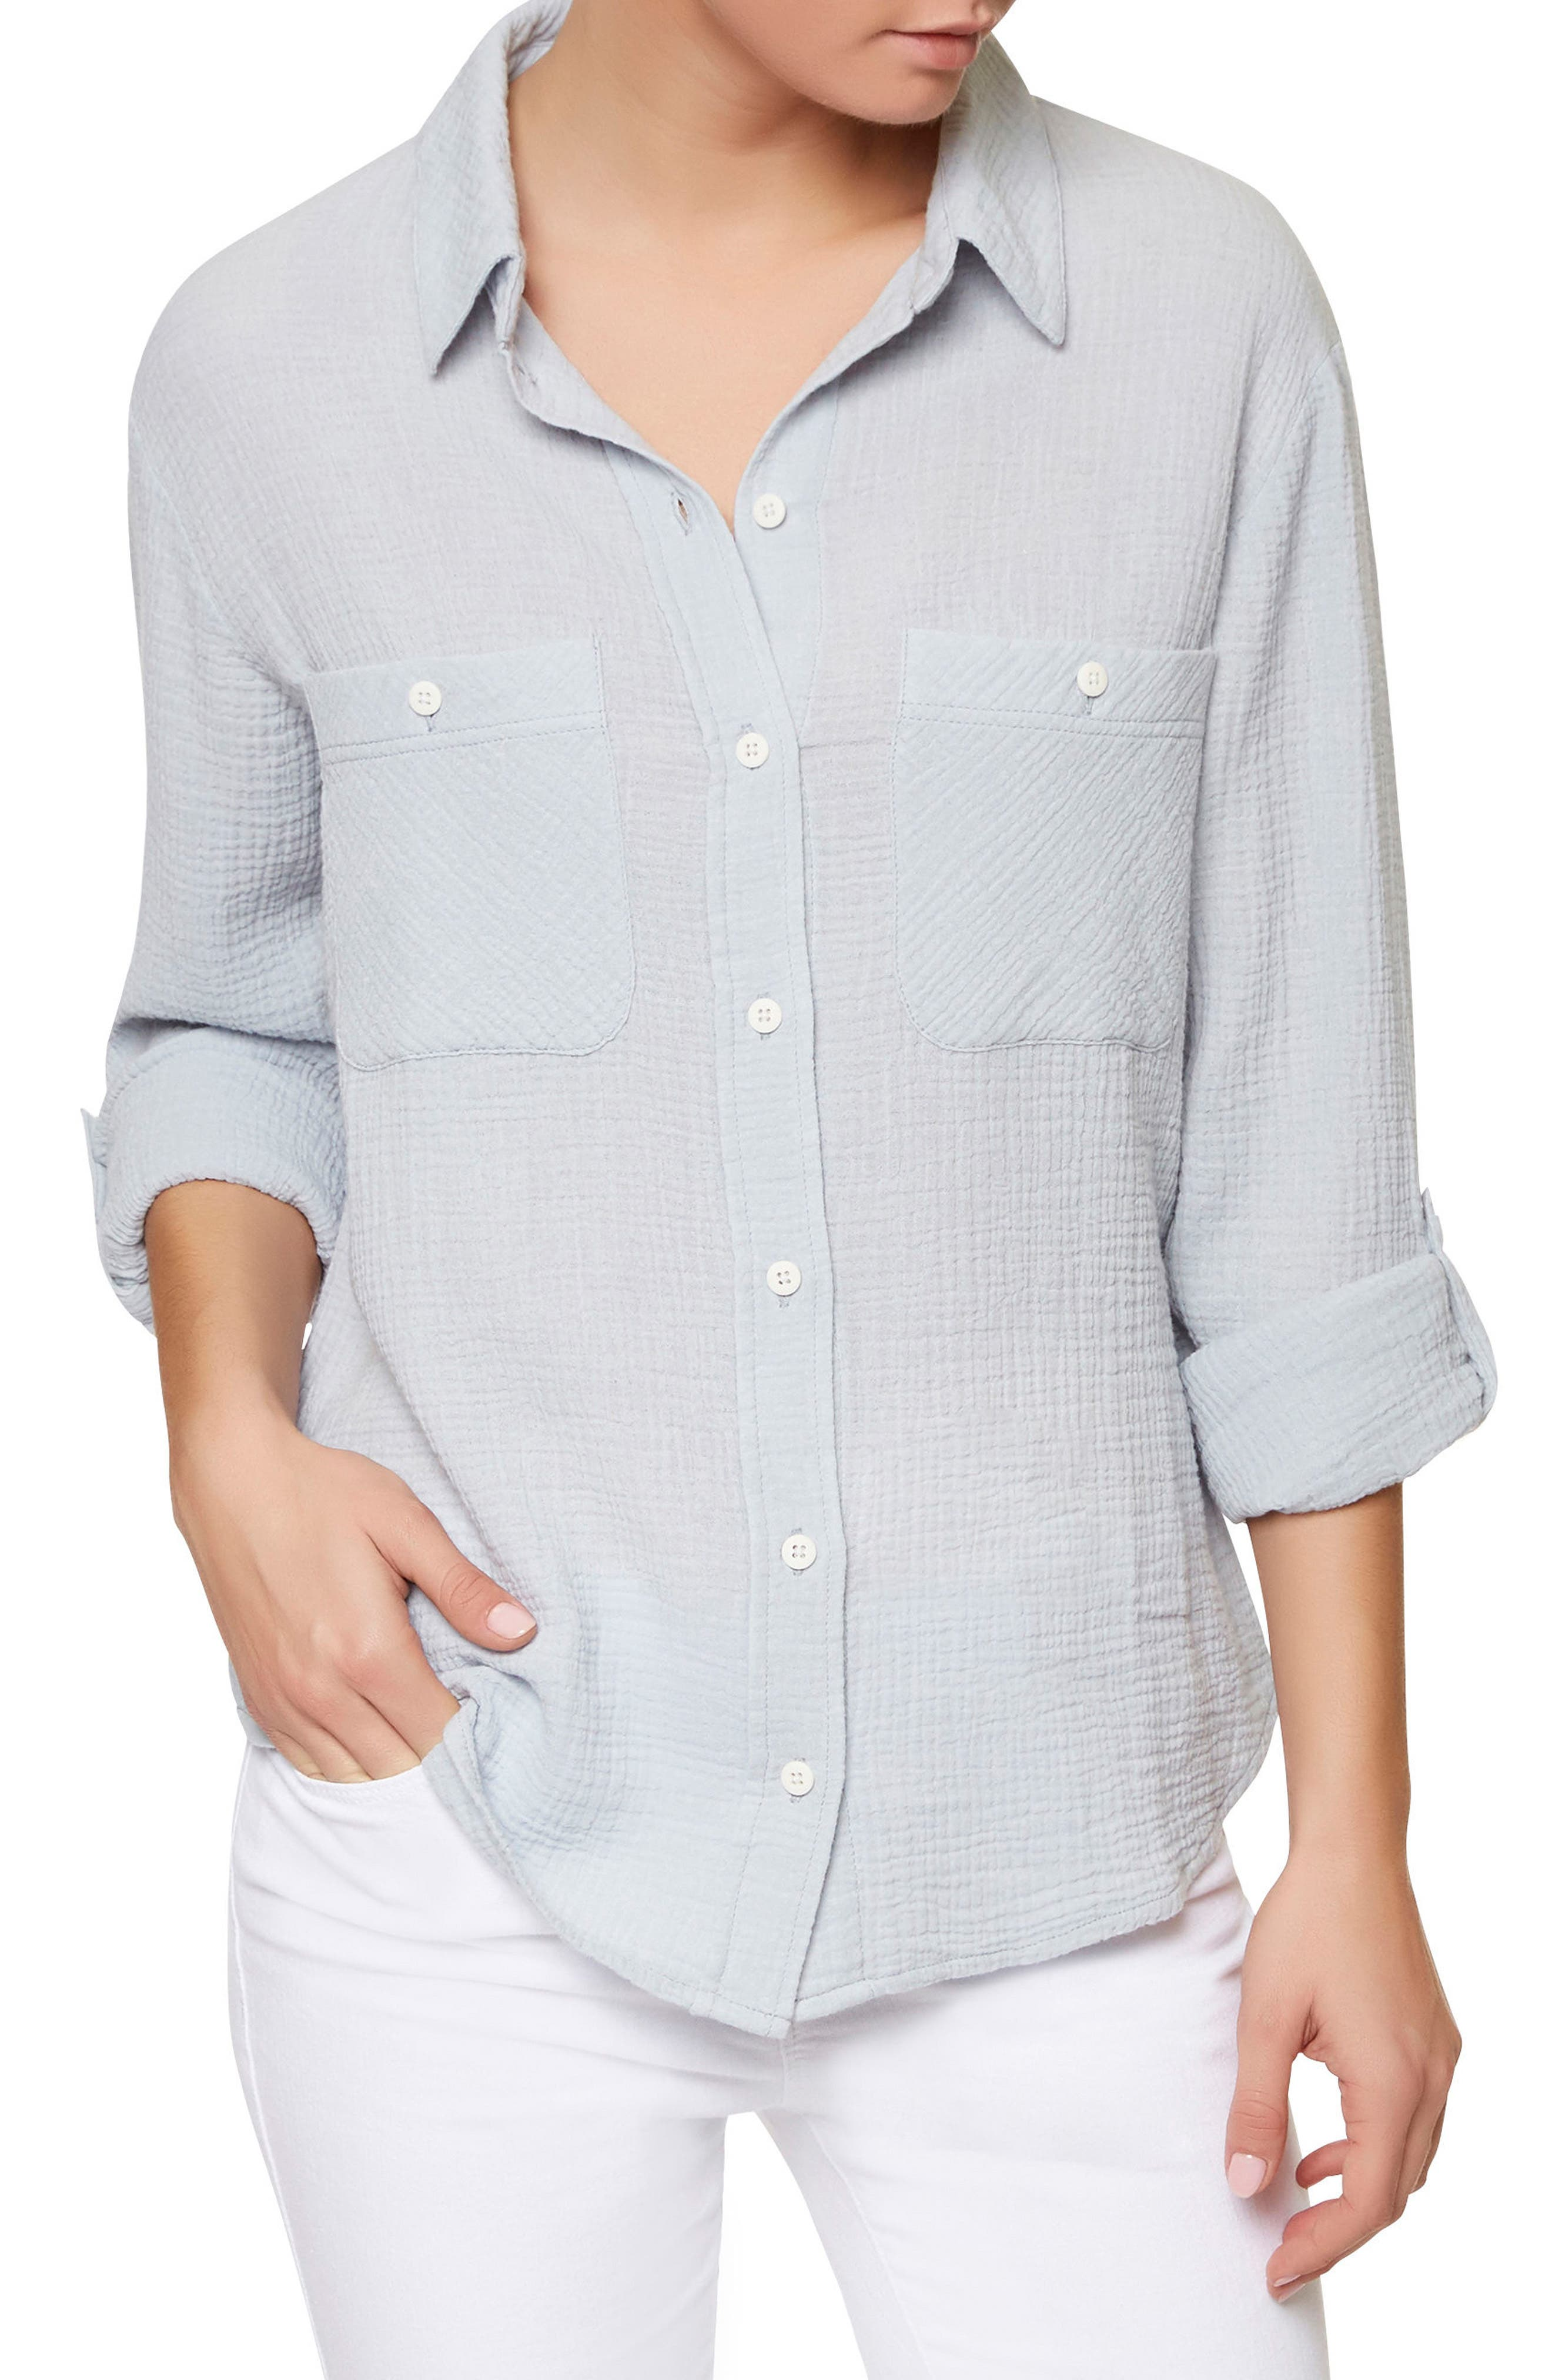 Alternate Image 1 Selected - Sanctuary The Steady Boyfriend Shirt